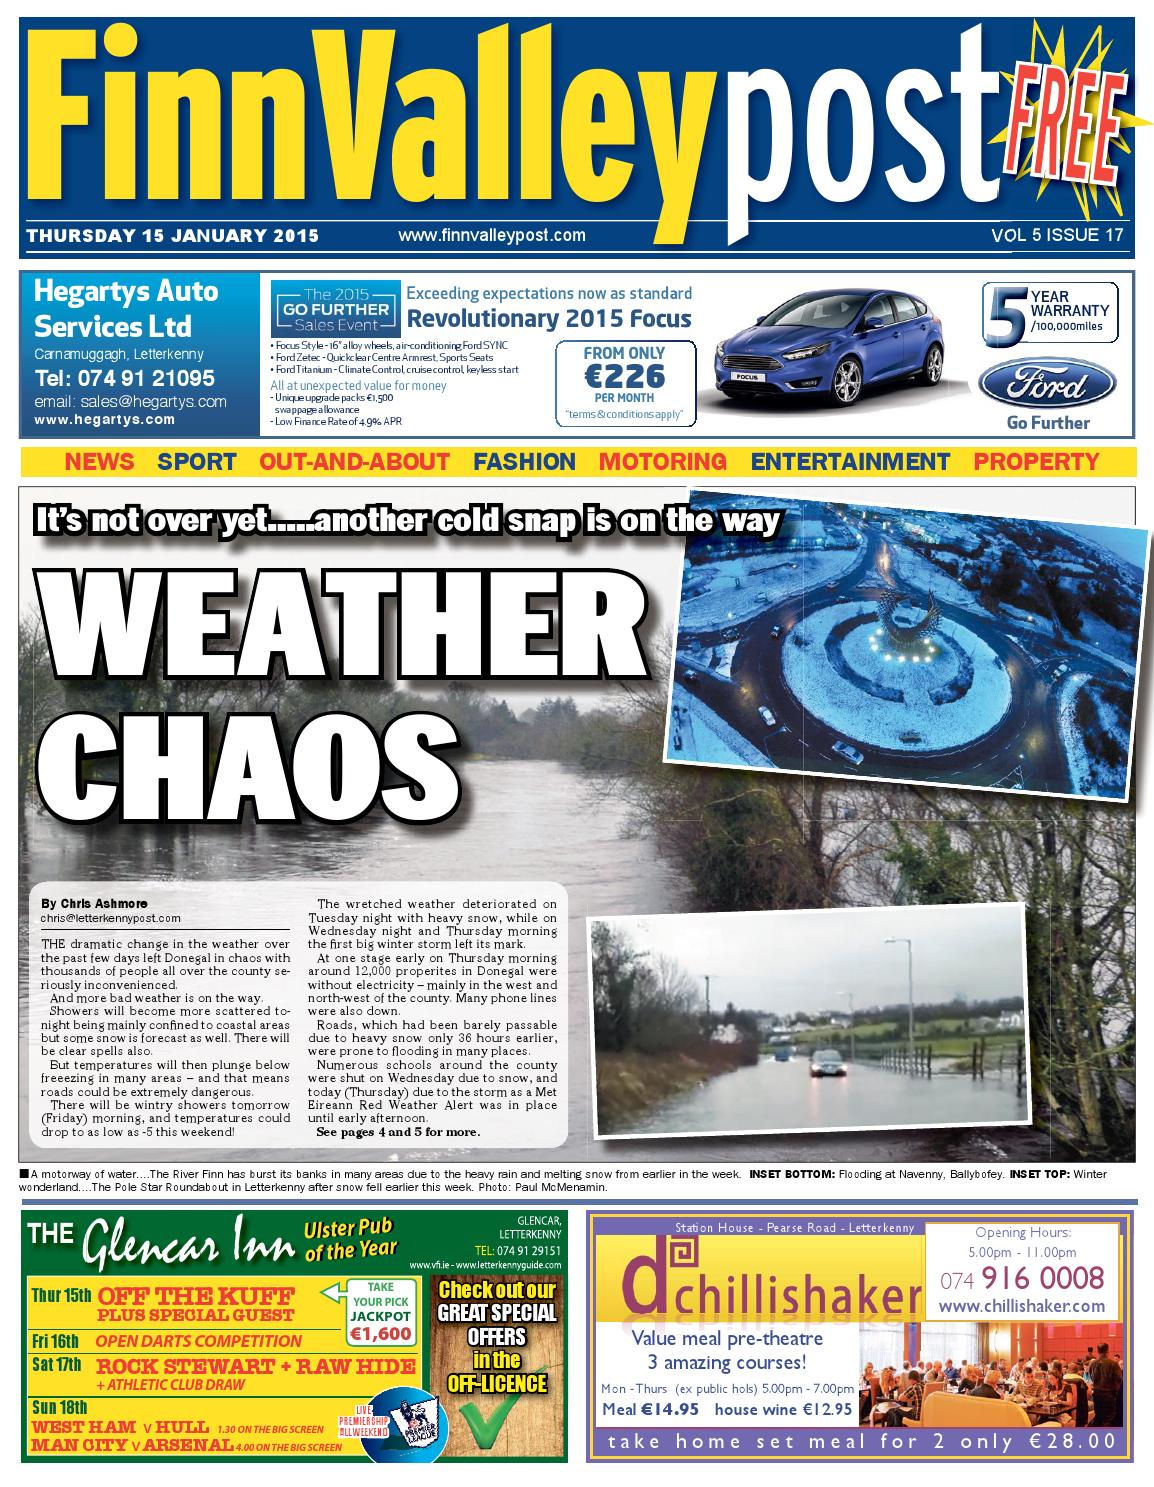 2acdddb60c18 15 Jan 2015 Finn Valley Post by River Media Newspapers - issuu